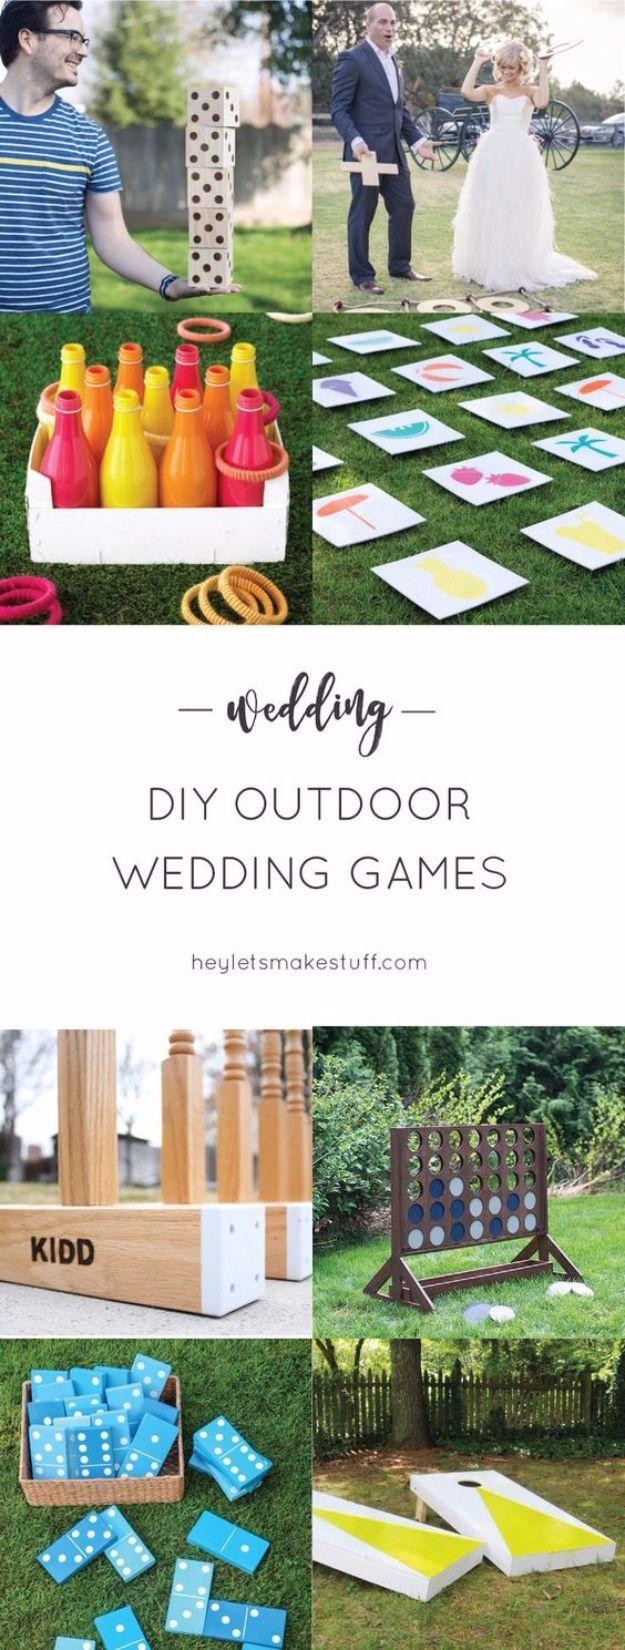 DIY Outdoors Wedding Ideas - DIY Outdoor Wedding Games - Step by Step Tutorials and Projects Ideas for Summer Brides - Lighting, Mason Jar Centerpieces, Table Decor, Party Favors, Guestbook Ideas, Signs, Flowers, Banners, Tablecloth #wedding #diy